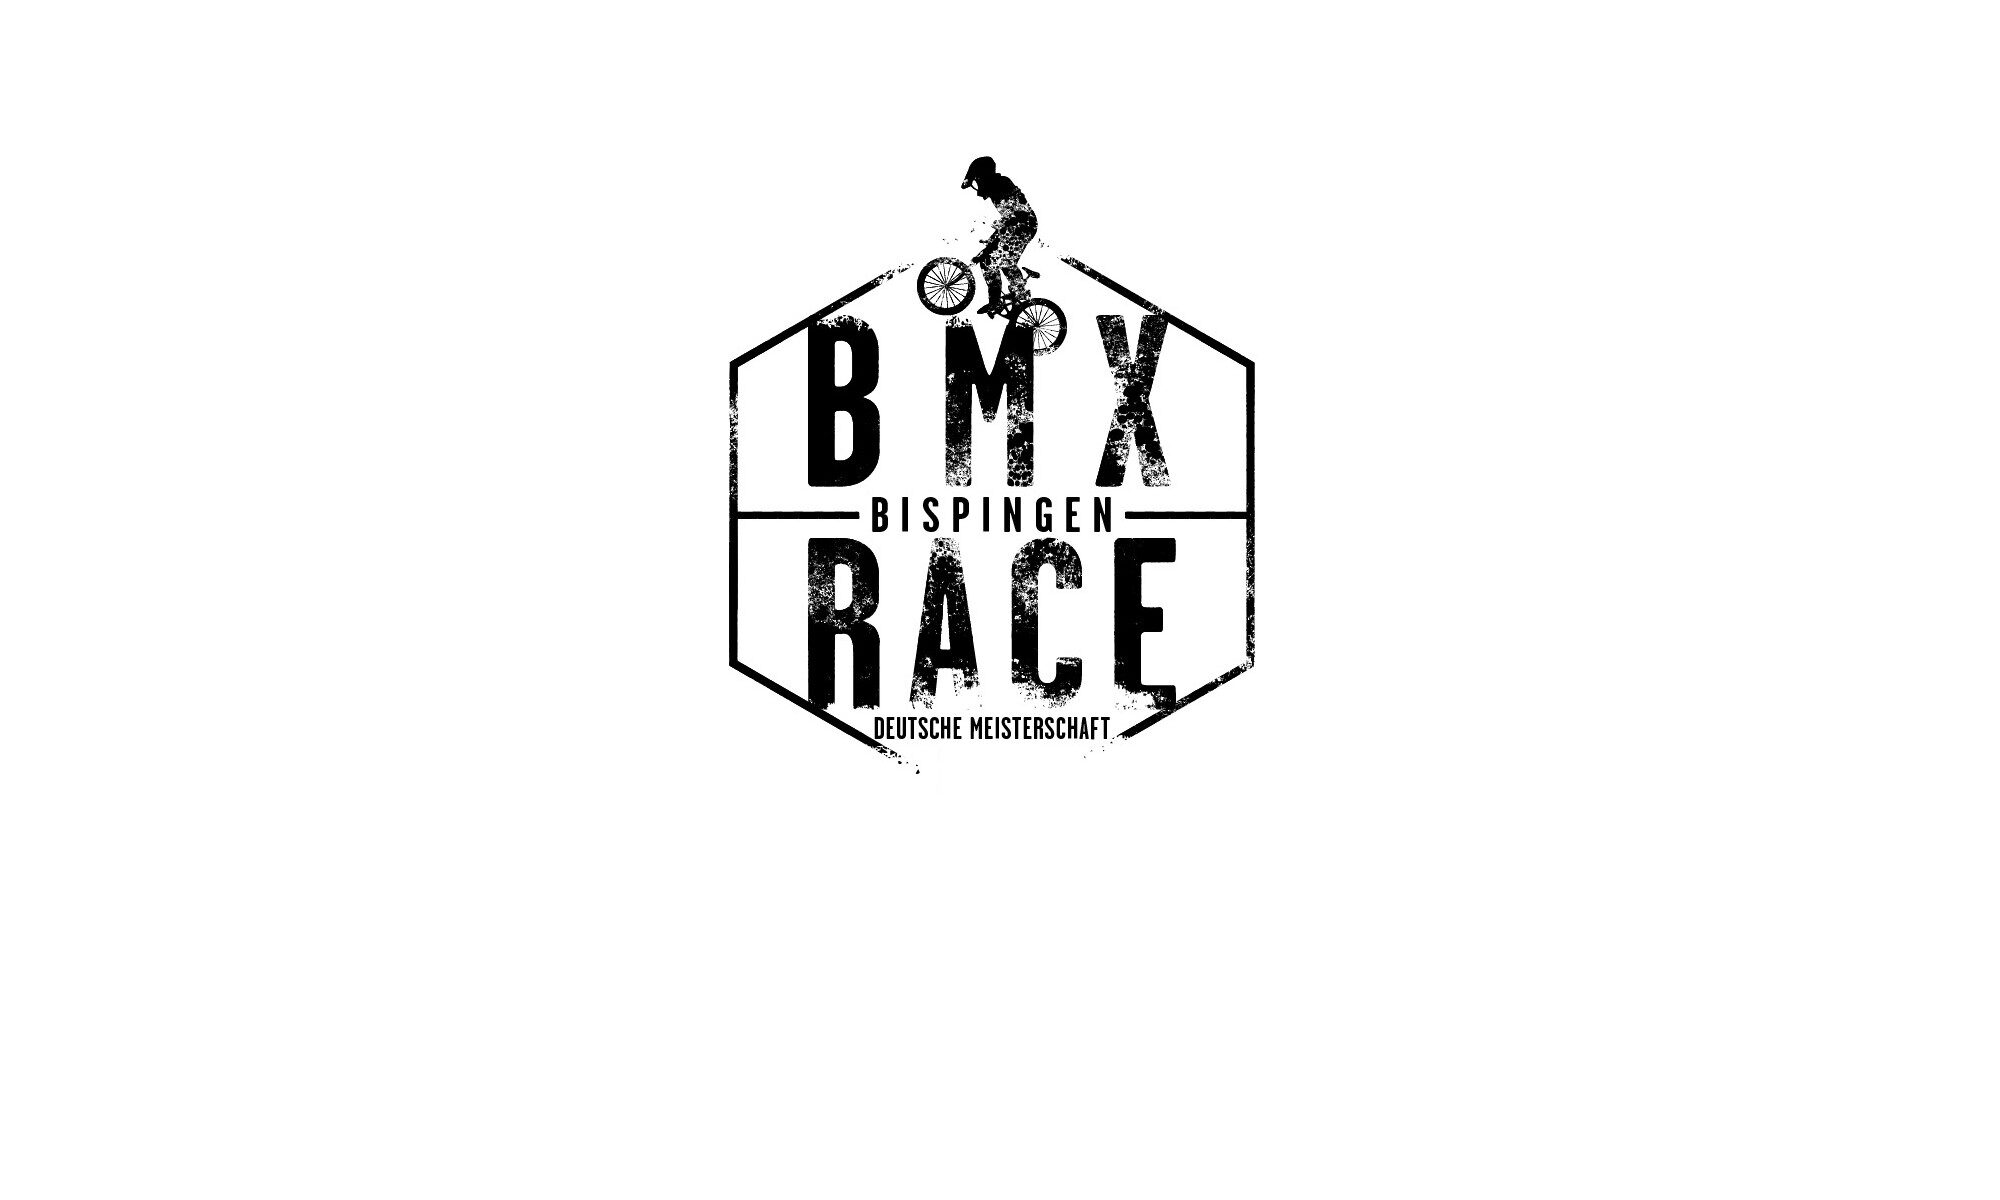 Deutsche BMX Race Meisterschaft in Bispingen